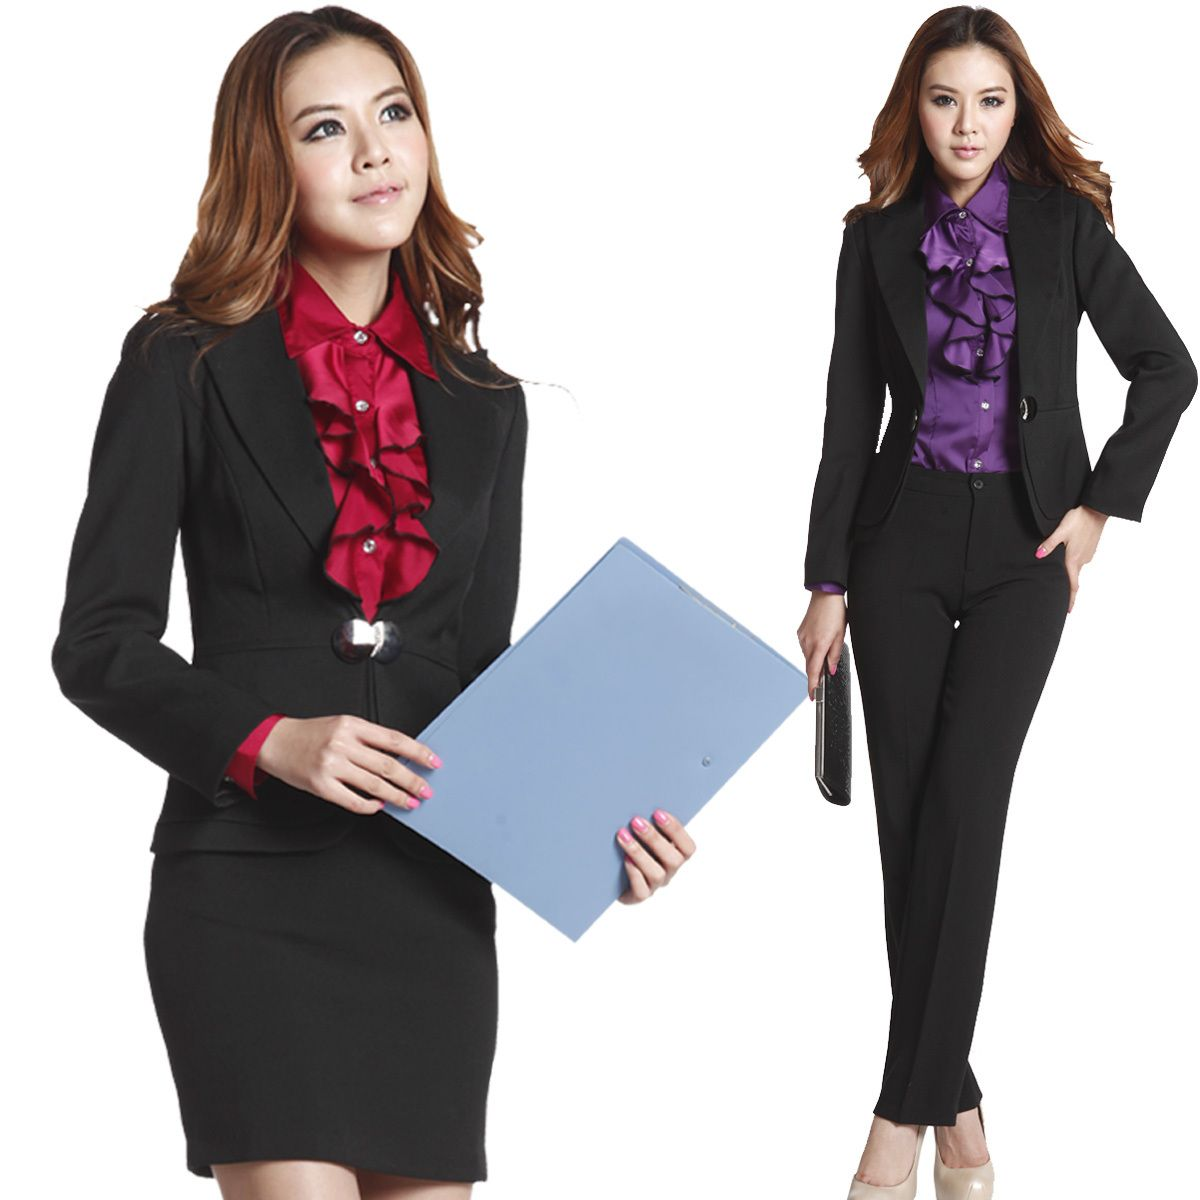 Aliexpress Work Uniform Las Office Online Ping Site The World Largest Retail Guide Platform Offers